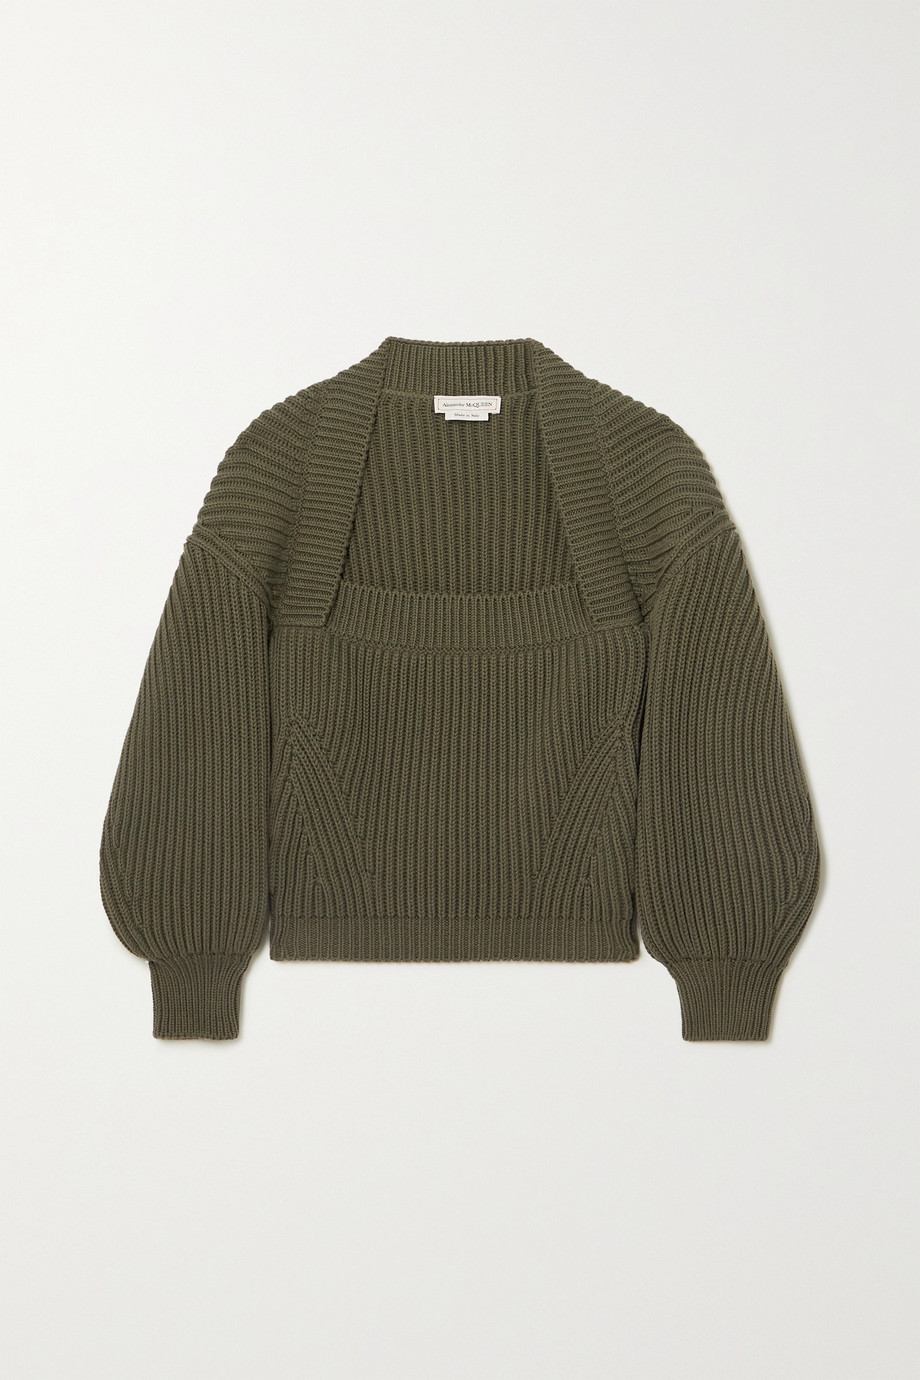 ALEXANDER MCQUEEN Ribbed cotton sweater